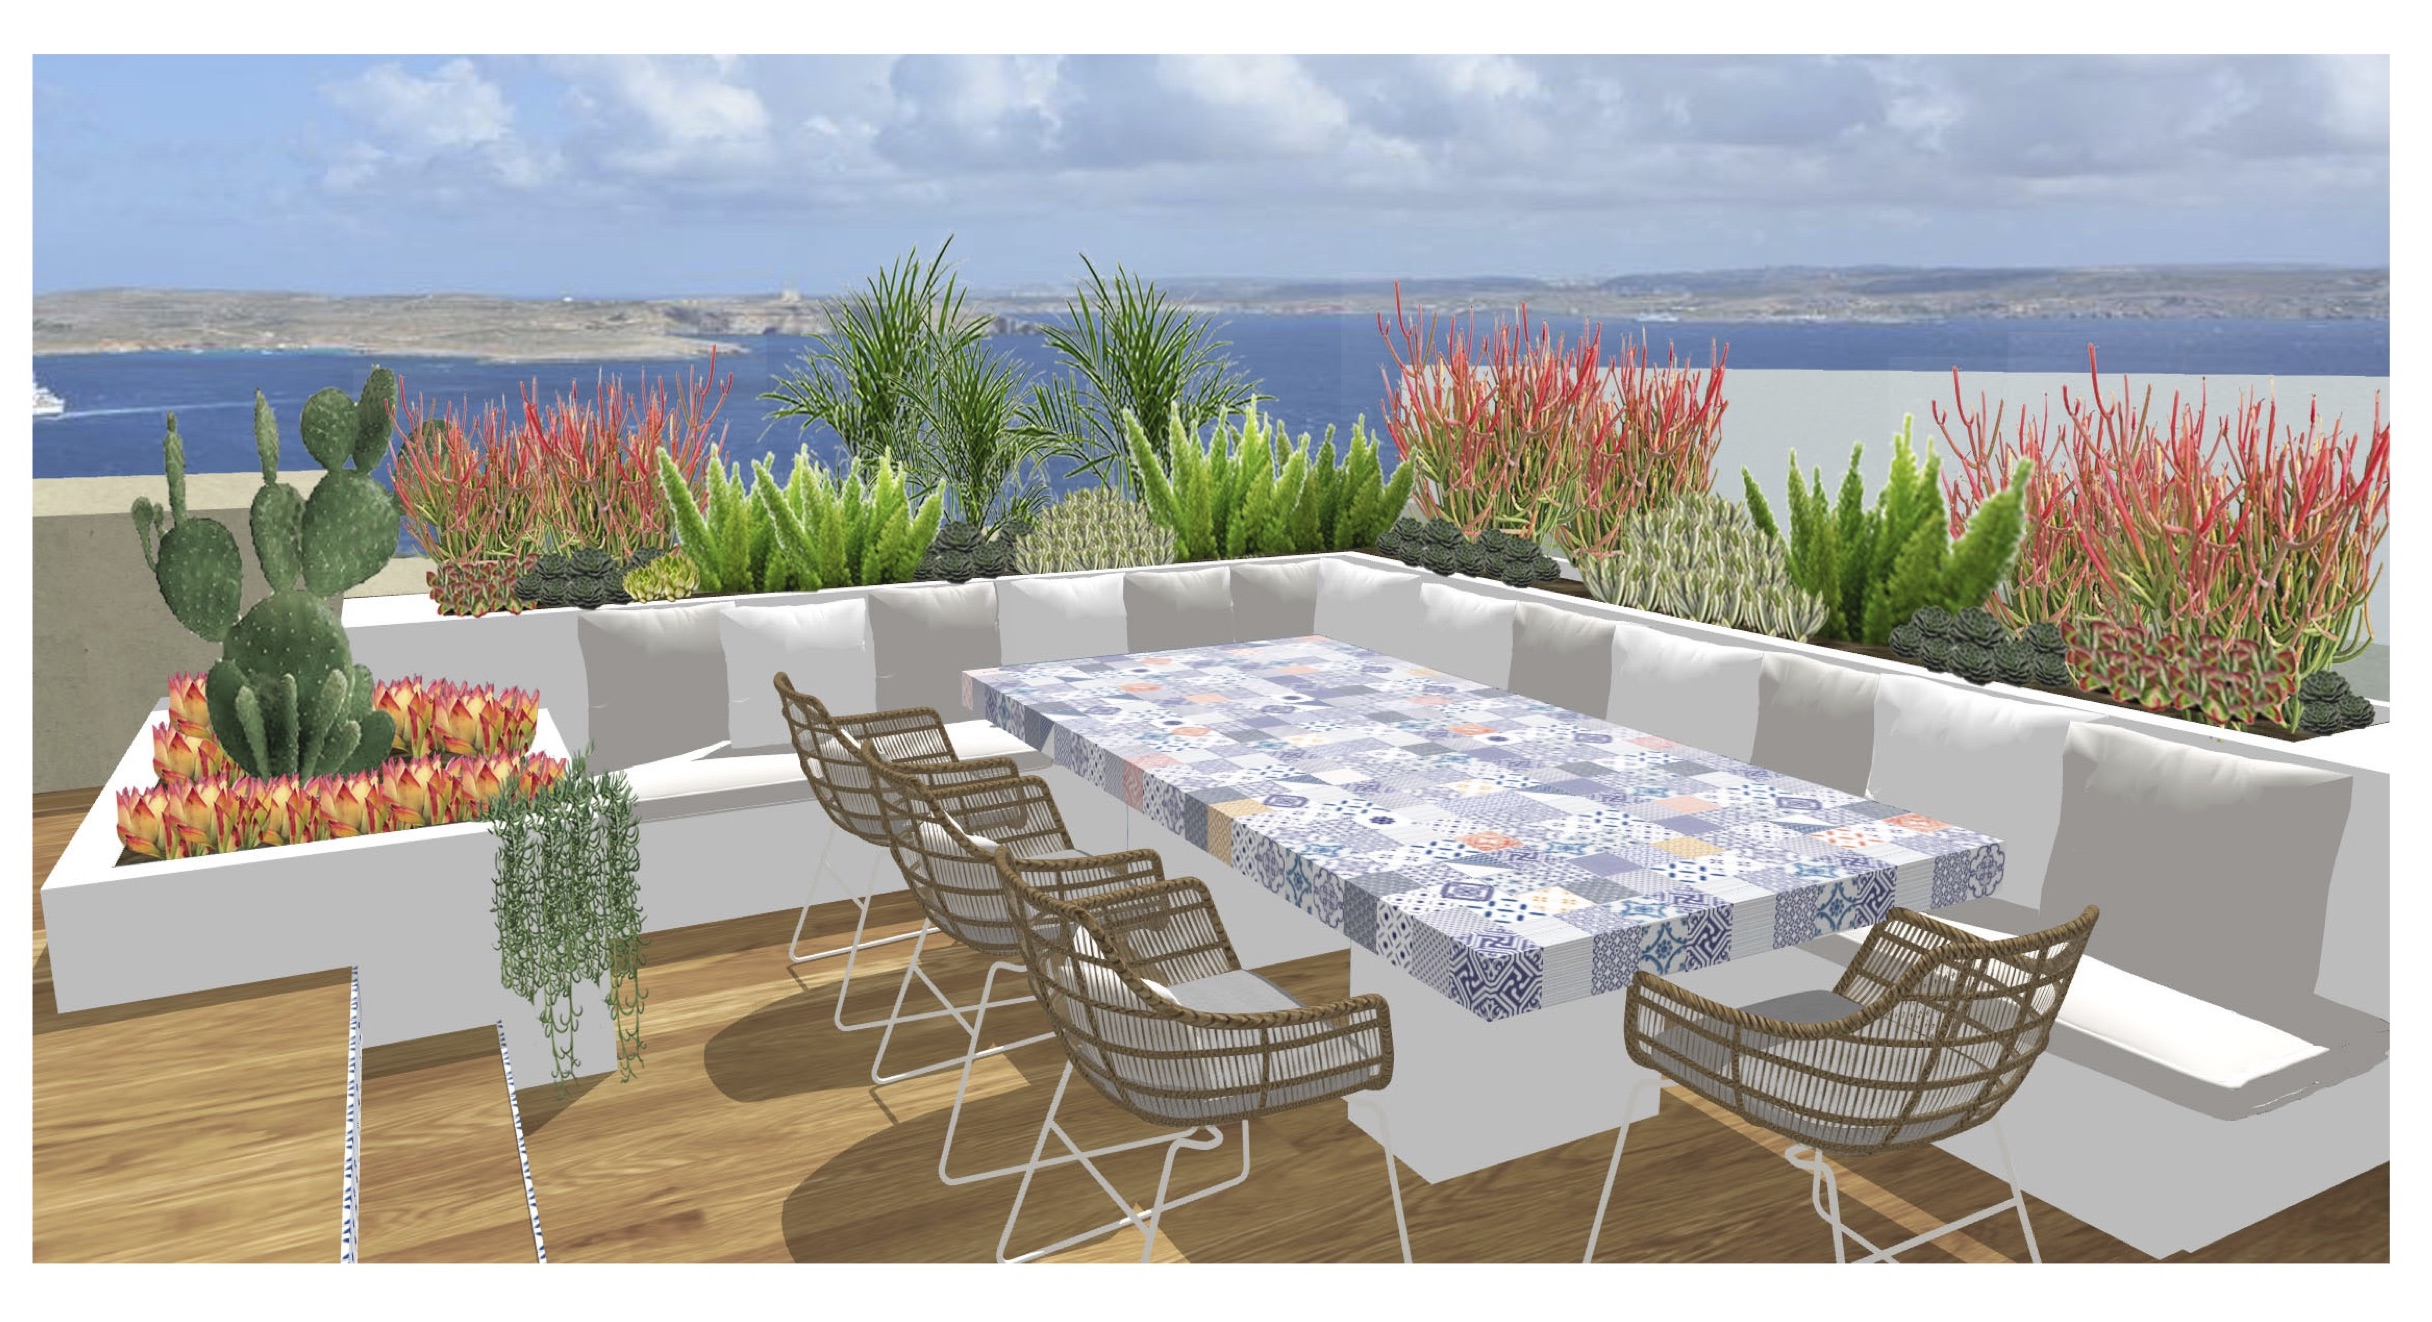 The Island Roof terrace